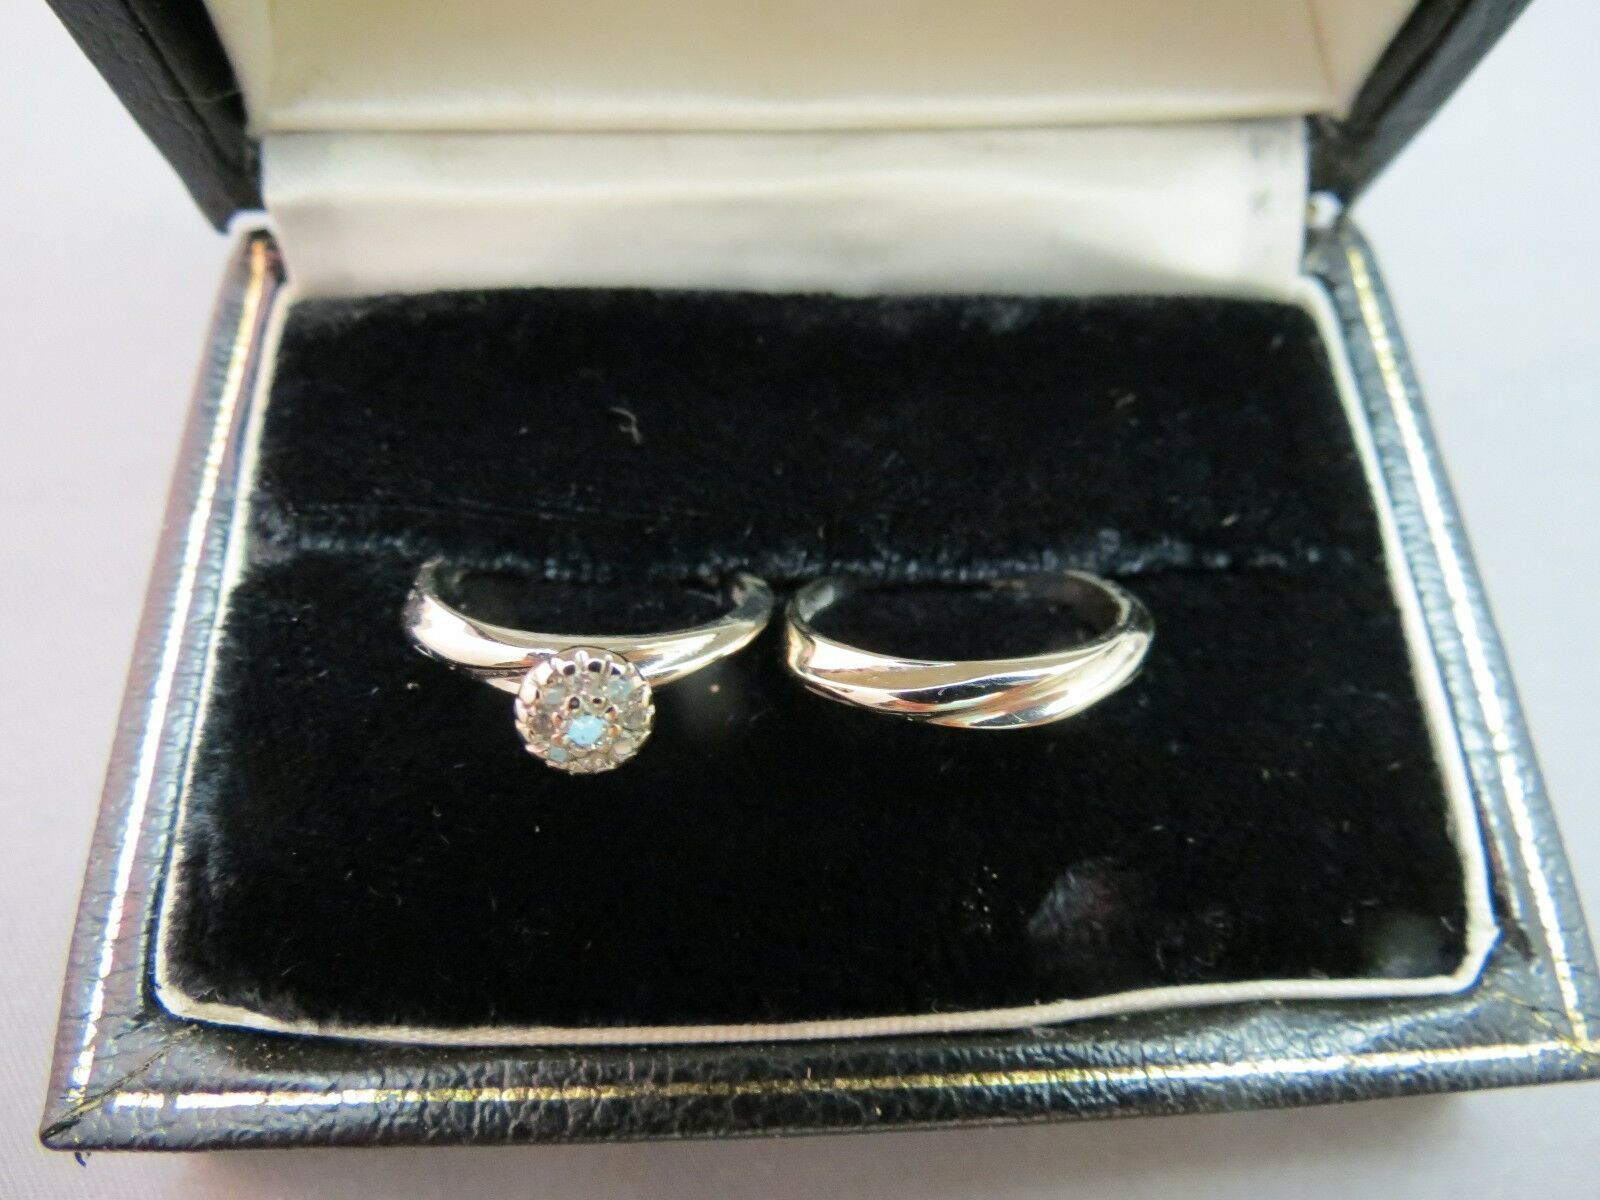 10k White Gold Diamond Wedding Rings Set Bridal Cluster 4.3g SZ 6 Fire-Lite VTG